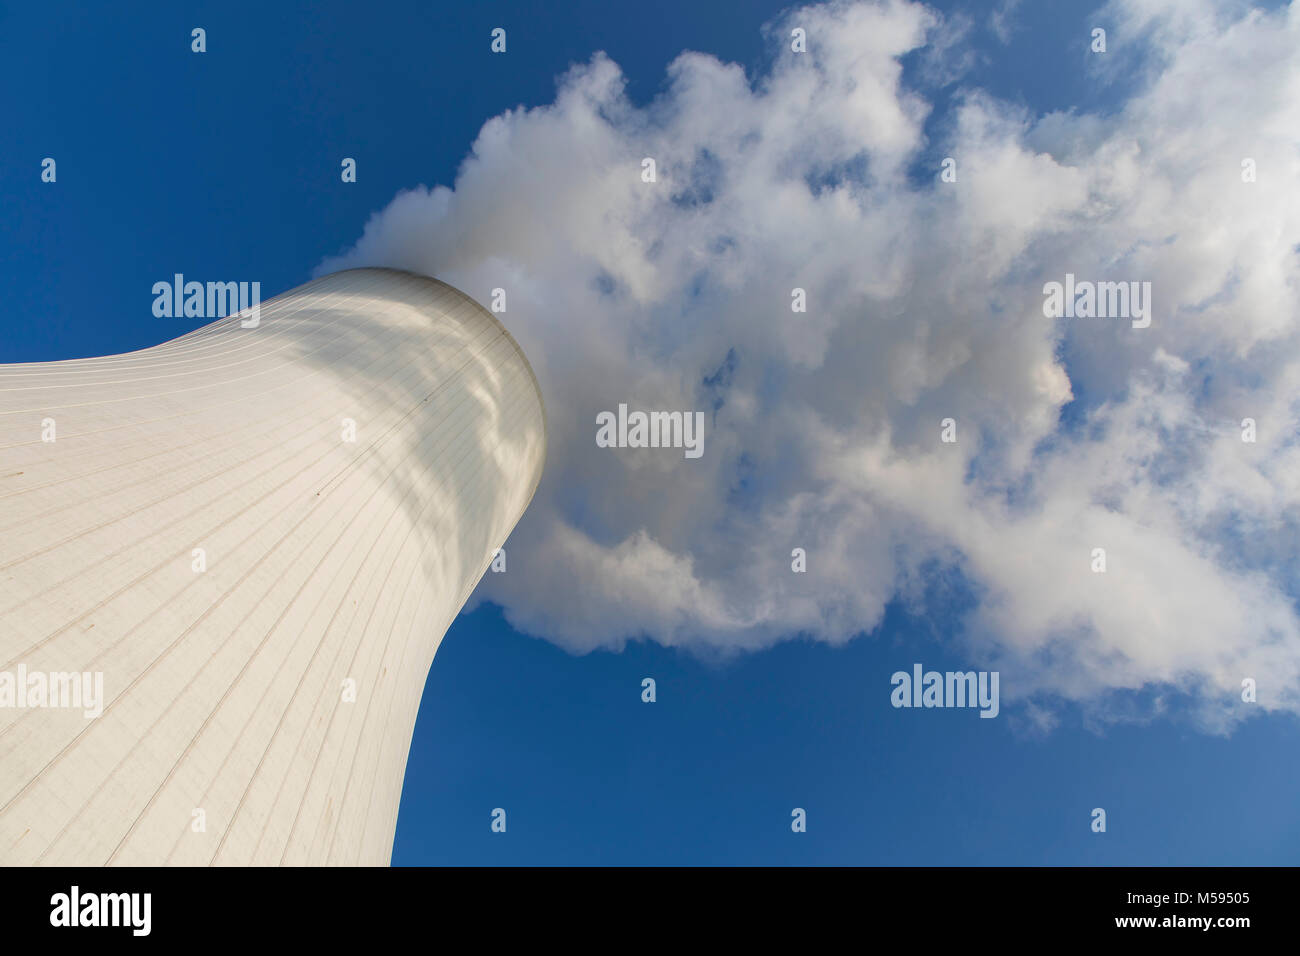 Cooling tower of the coal power plant Duisburg-Walsum, operated by STEAG and EVN AG, 181 meters high, water vapor - Stock Image